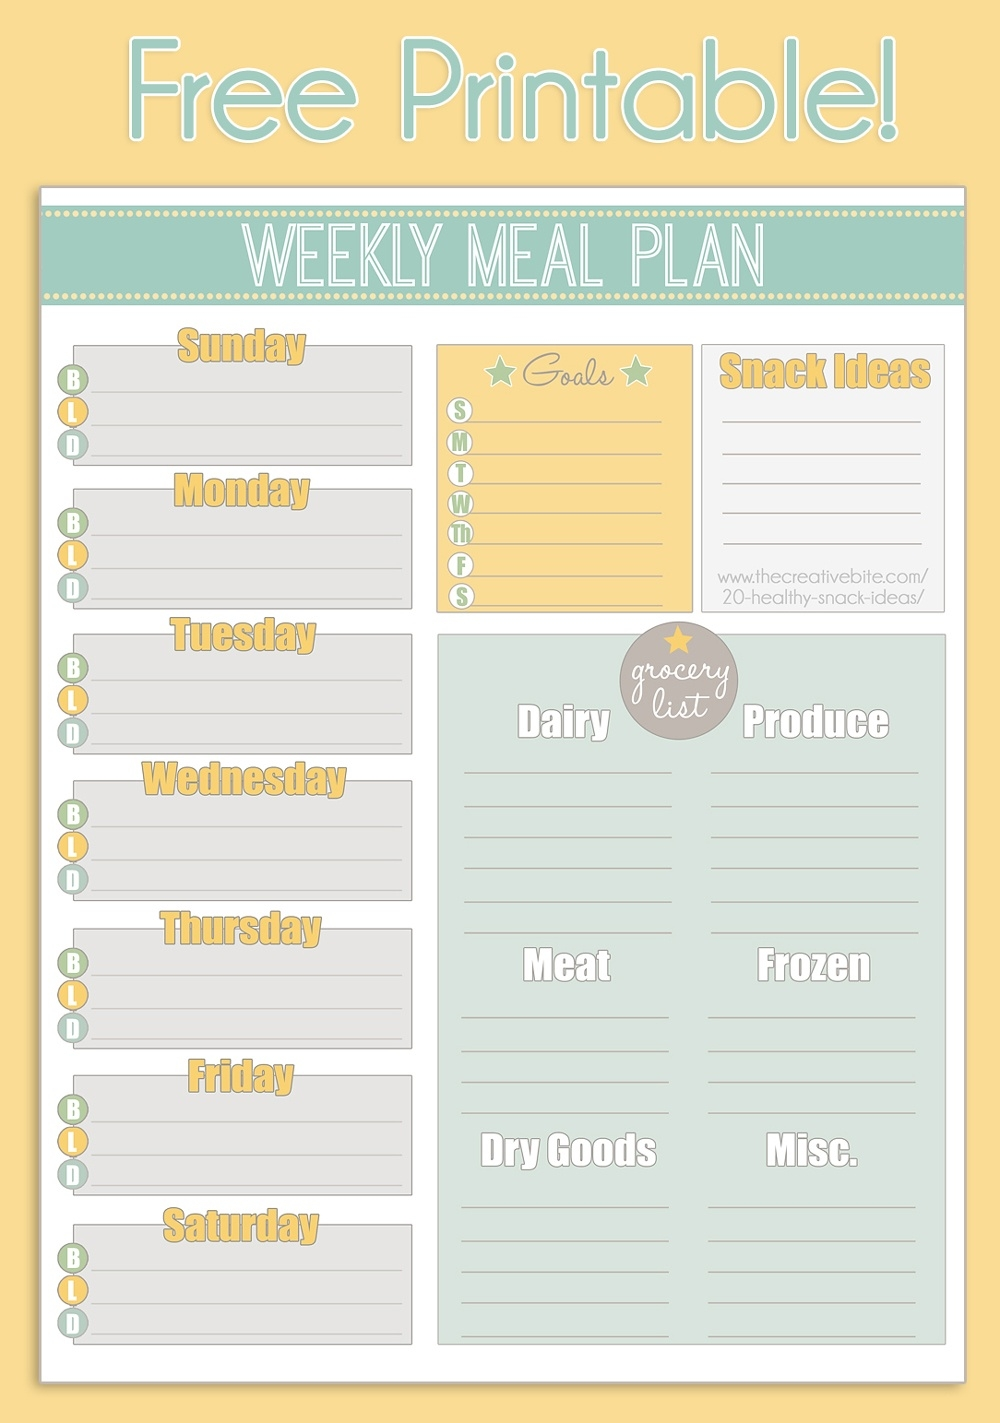 Free Printable Weekly Meal Planner + Calendar  Free Printable Weekly Planner Calendars